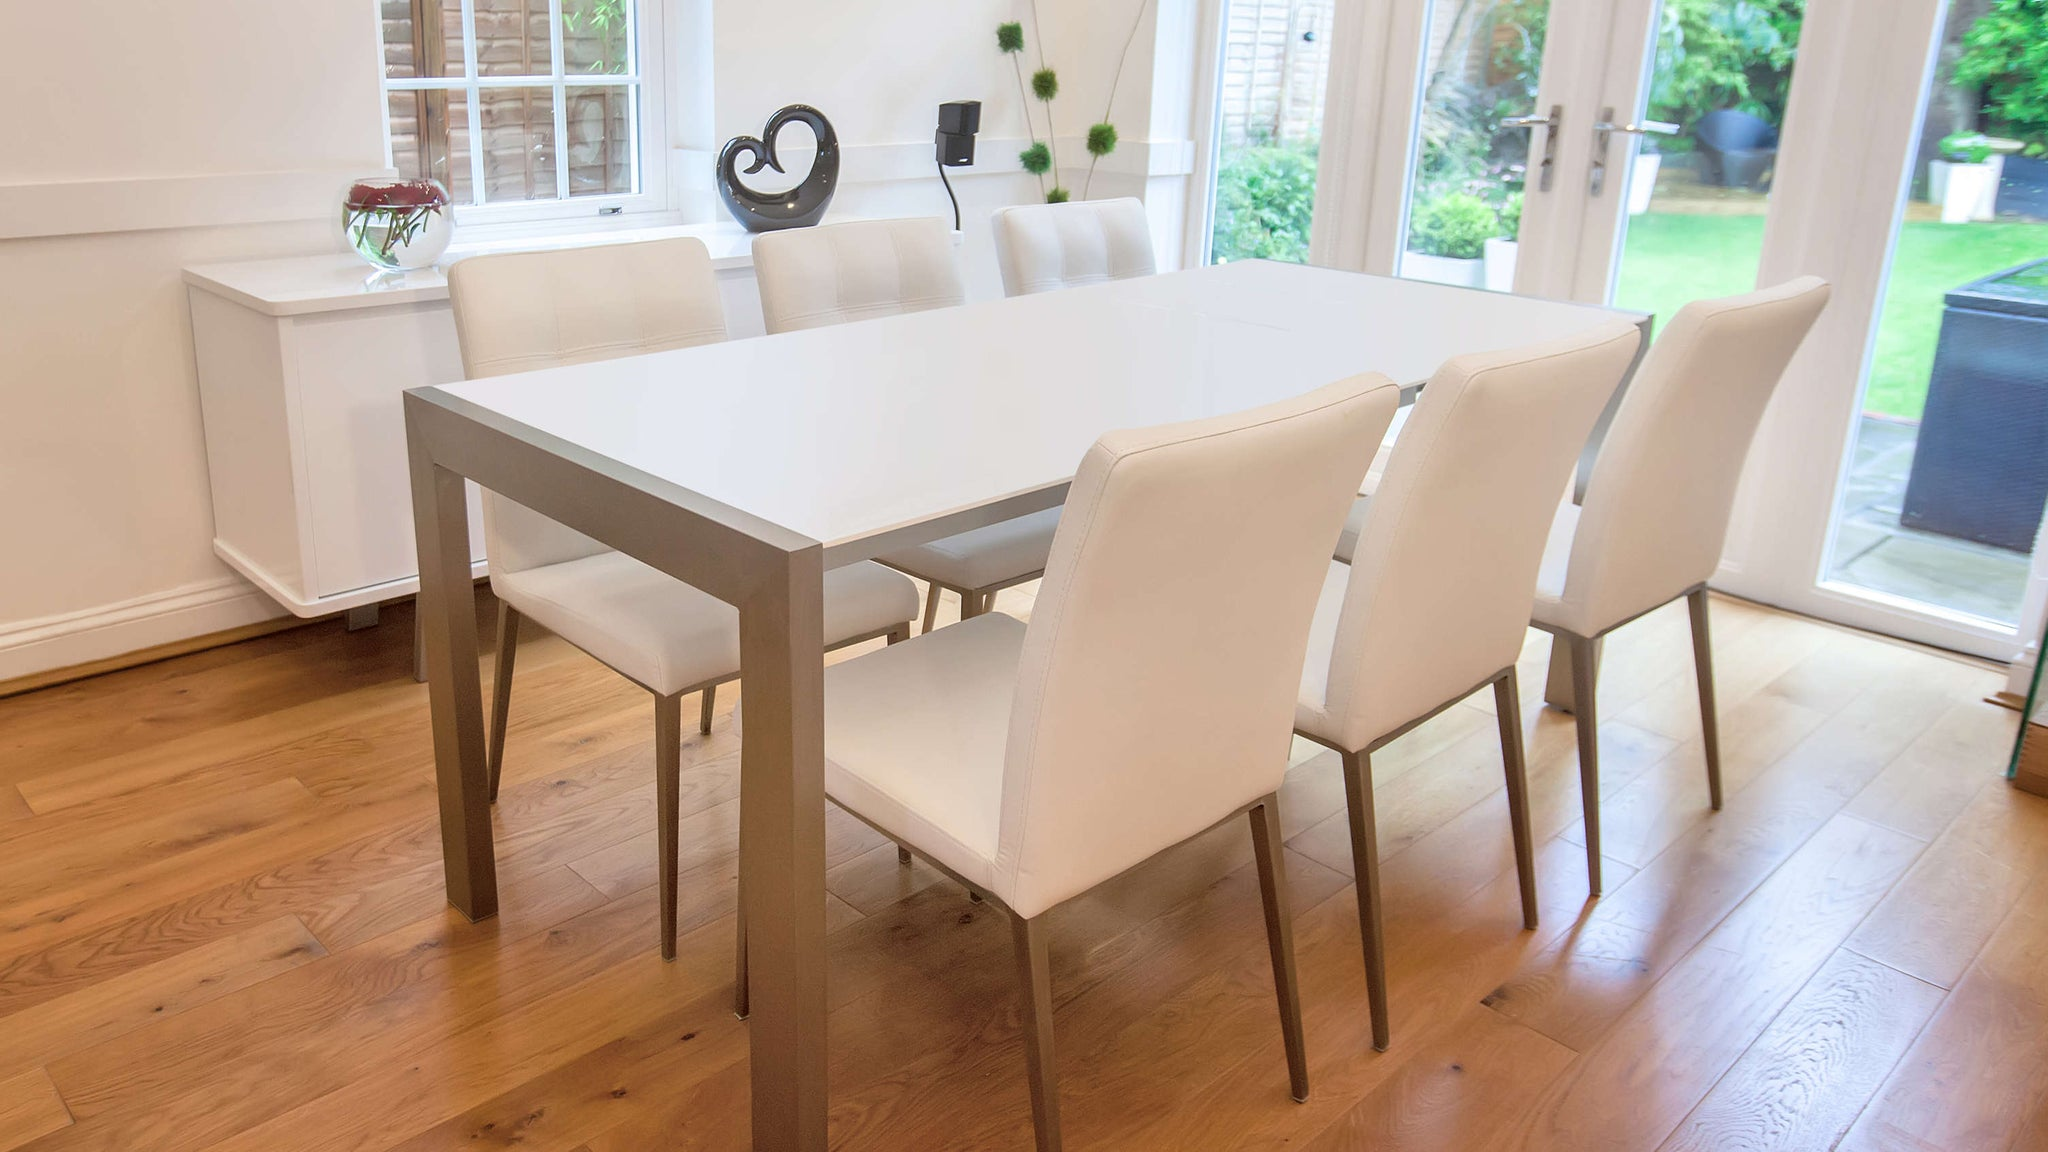 Large Matt White Dining Table and White Dining Chairs